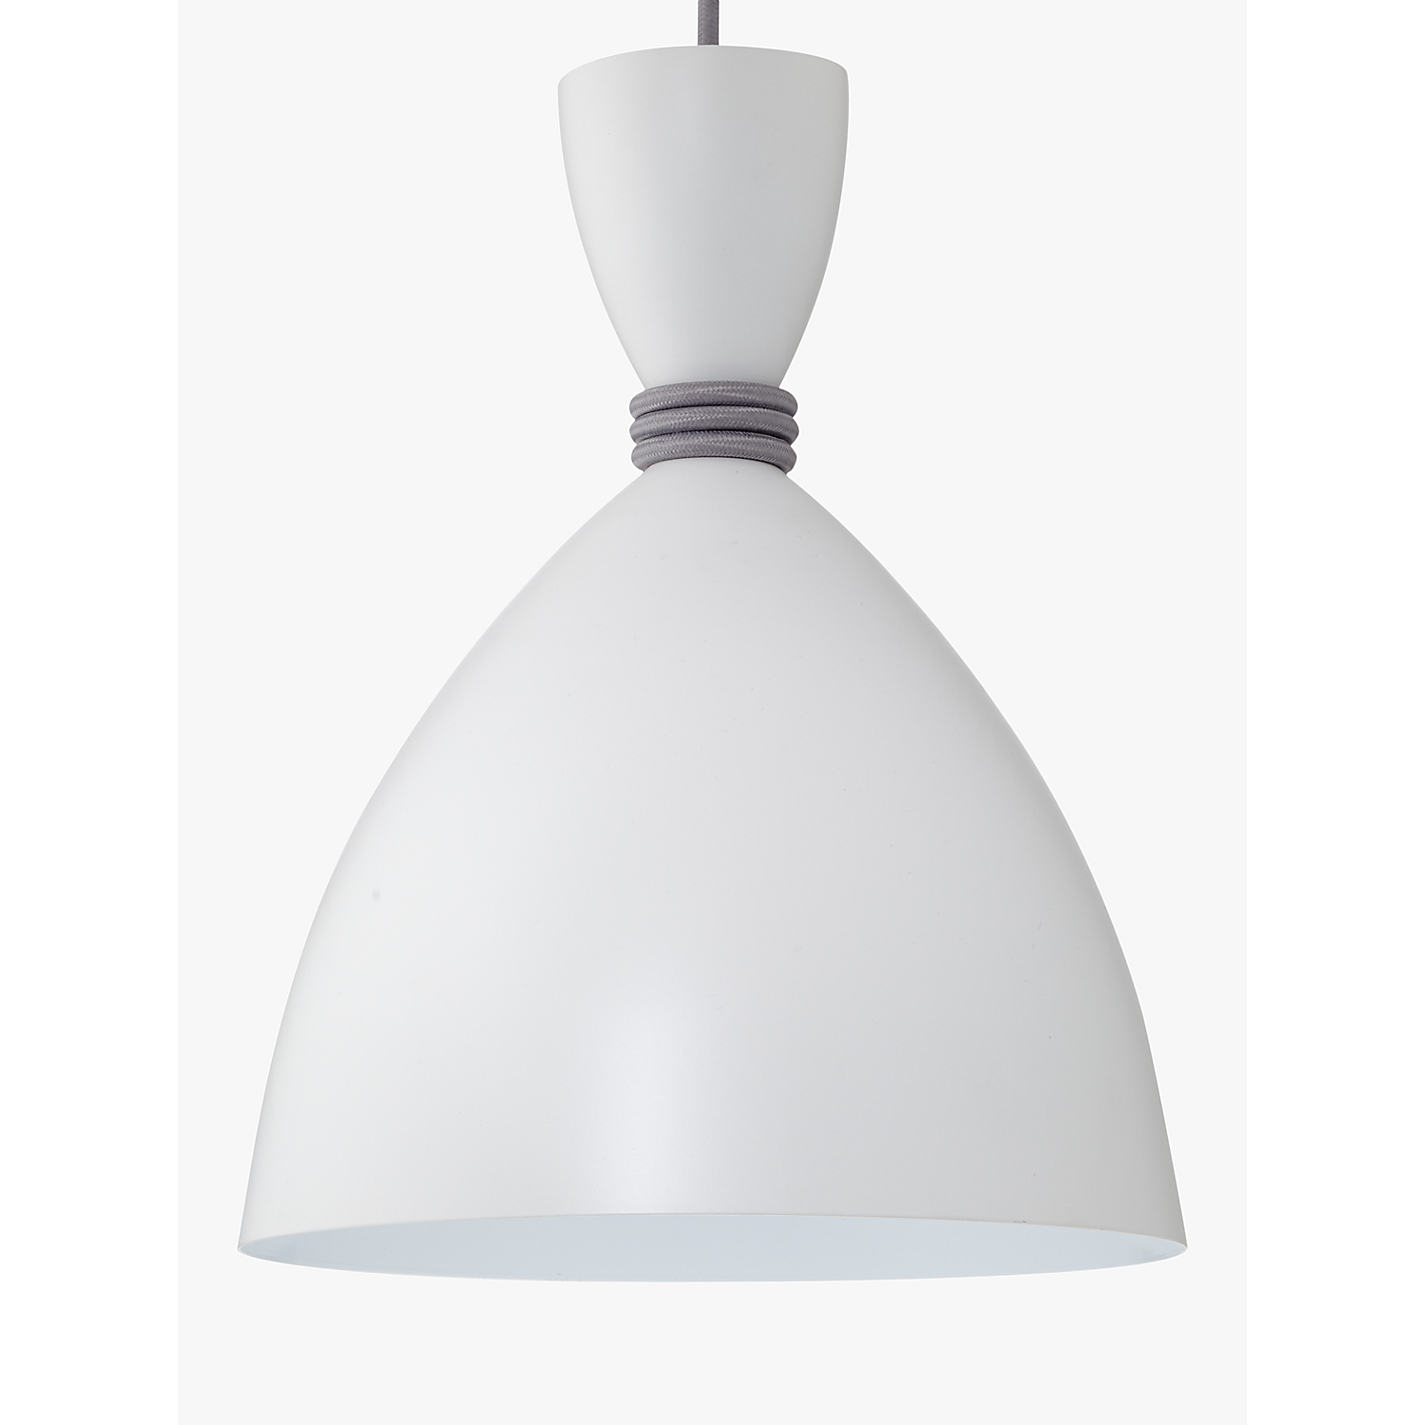 Buy house by john lewis pendulum ceiling light john lewis buy house by john lewis pendulum ceiling light online at johnlewis mozeypictures Choice Image